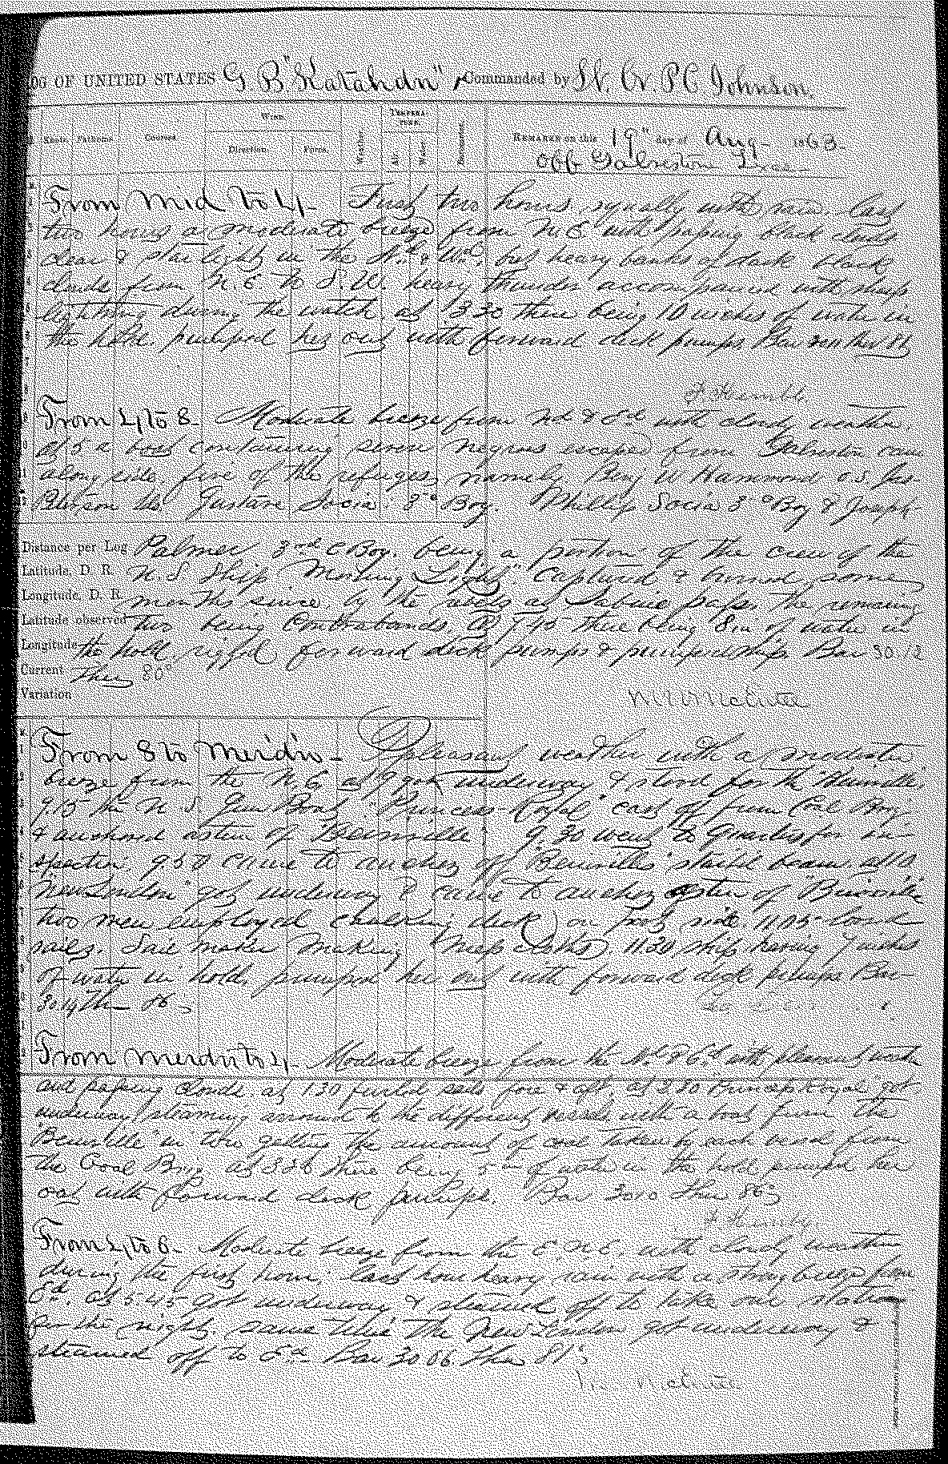 On August 19, 1863, Benjamin  Drummond escaped from his Confederate captors  and rowed out into the Gulf of Mexico where he was taken aboard the USS Gunboat Katahdin.  The logbook of the Katahdin noted that Drummond was one of the  former crewmembers of  the U.S.S. Morning Light, that had been captured and burned some months since. This is a  digital copy of the original held by the National Archives.